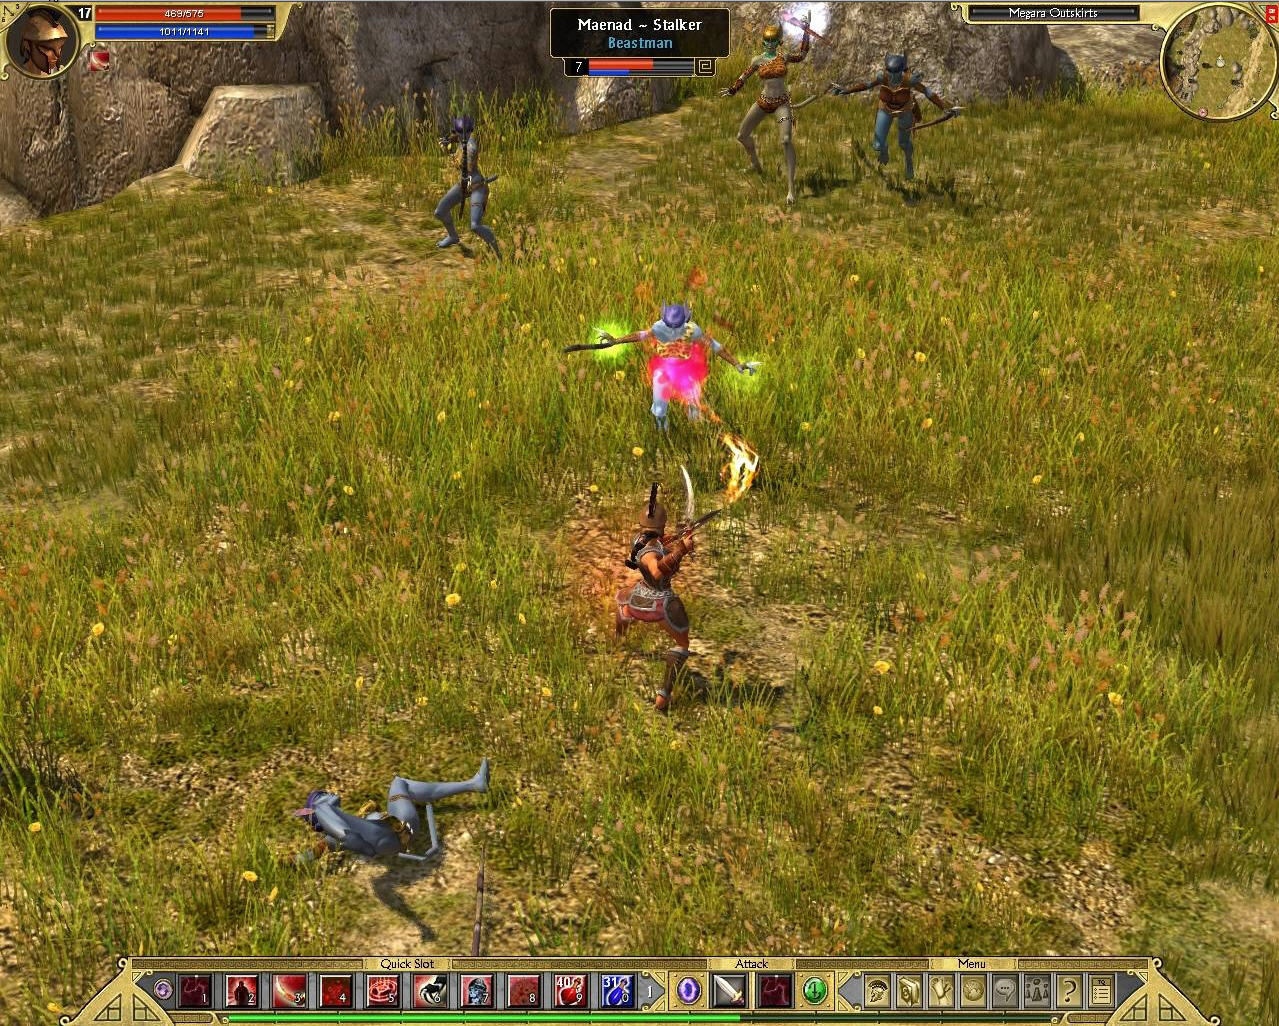 Titan quest nudes games patch hentia videos